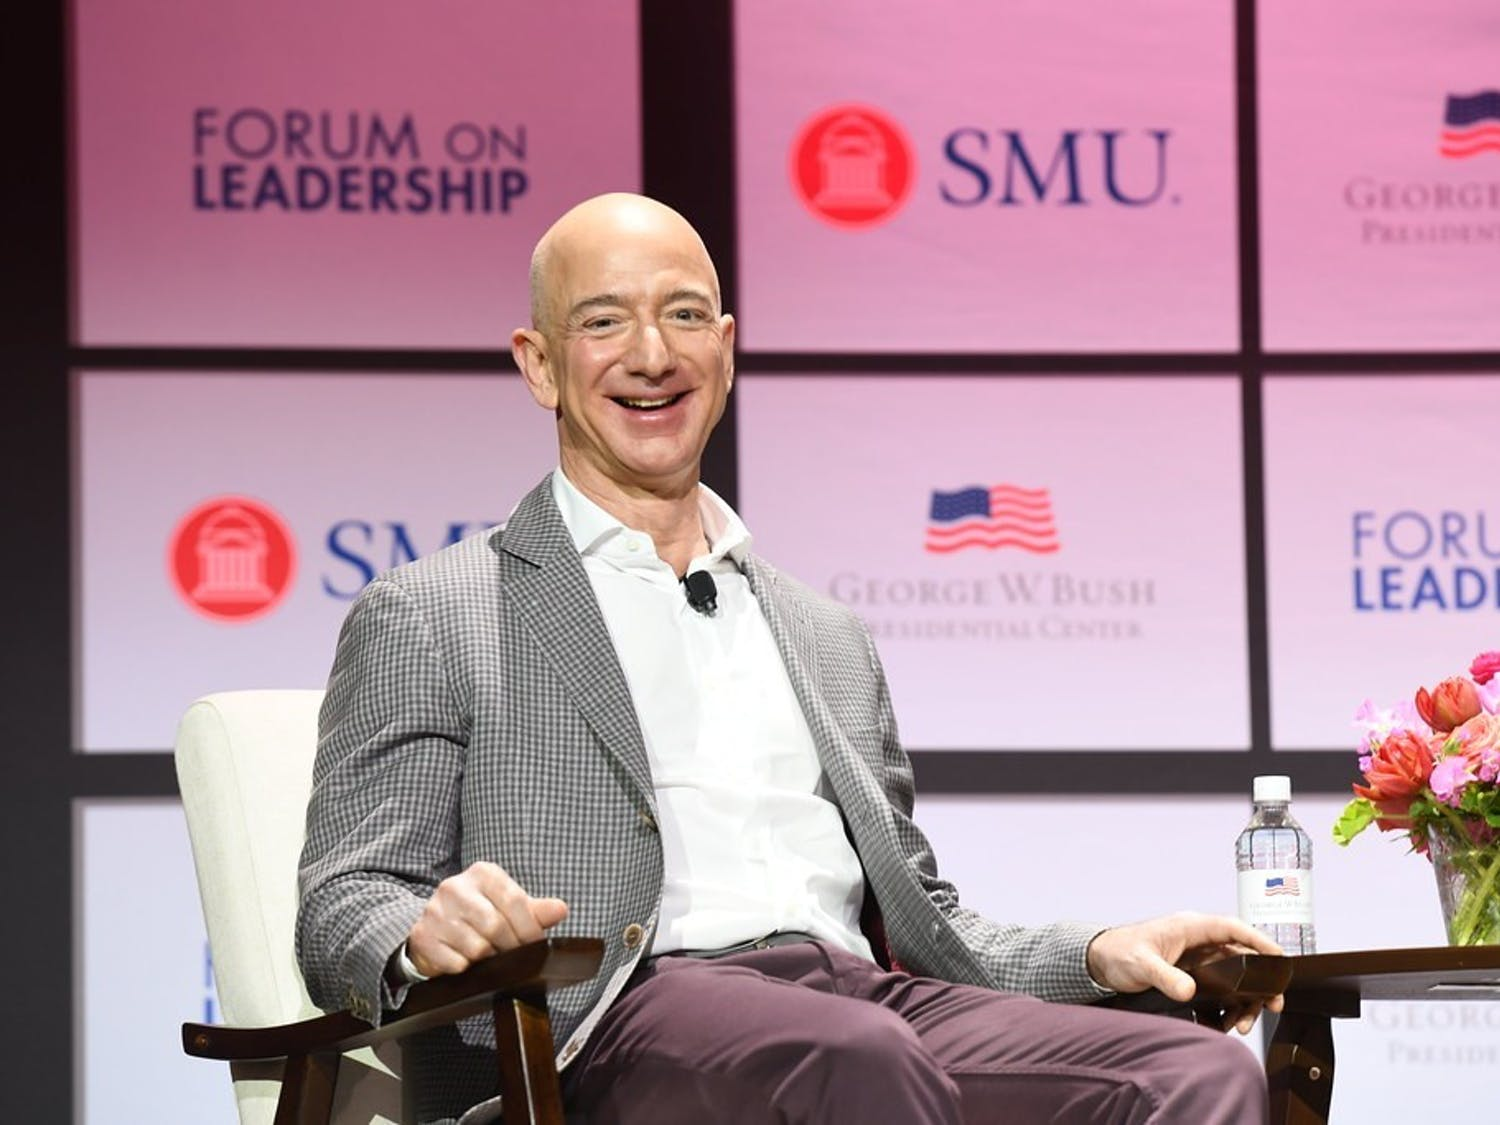 Bezos' net worth is $186 billion, while 38.1 million people live below the poverty line in America as of 2018